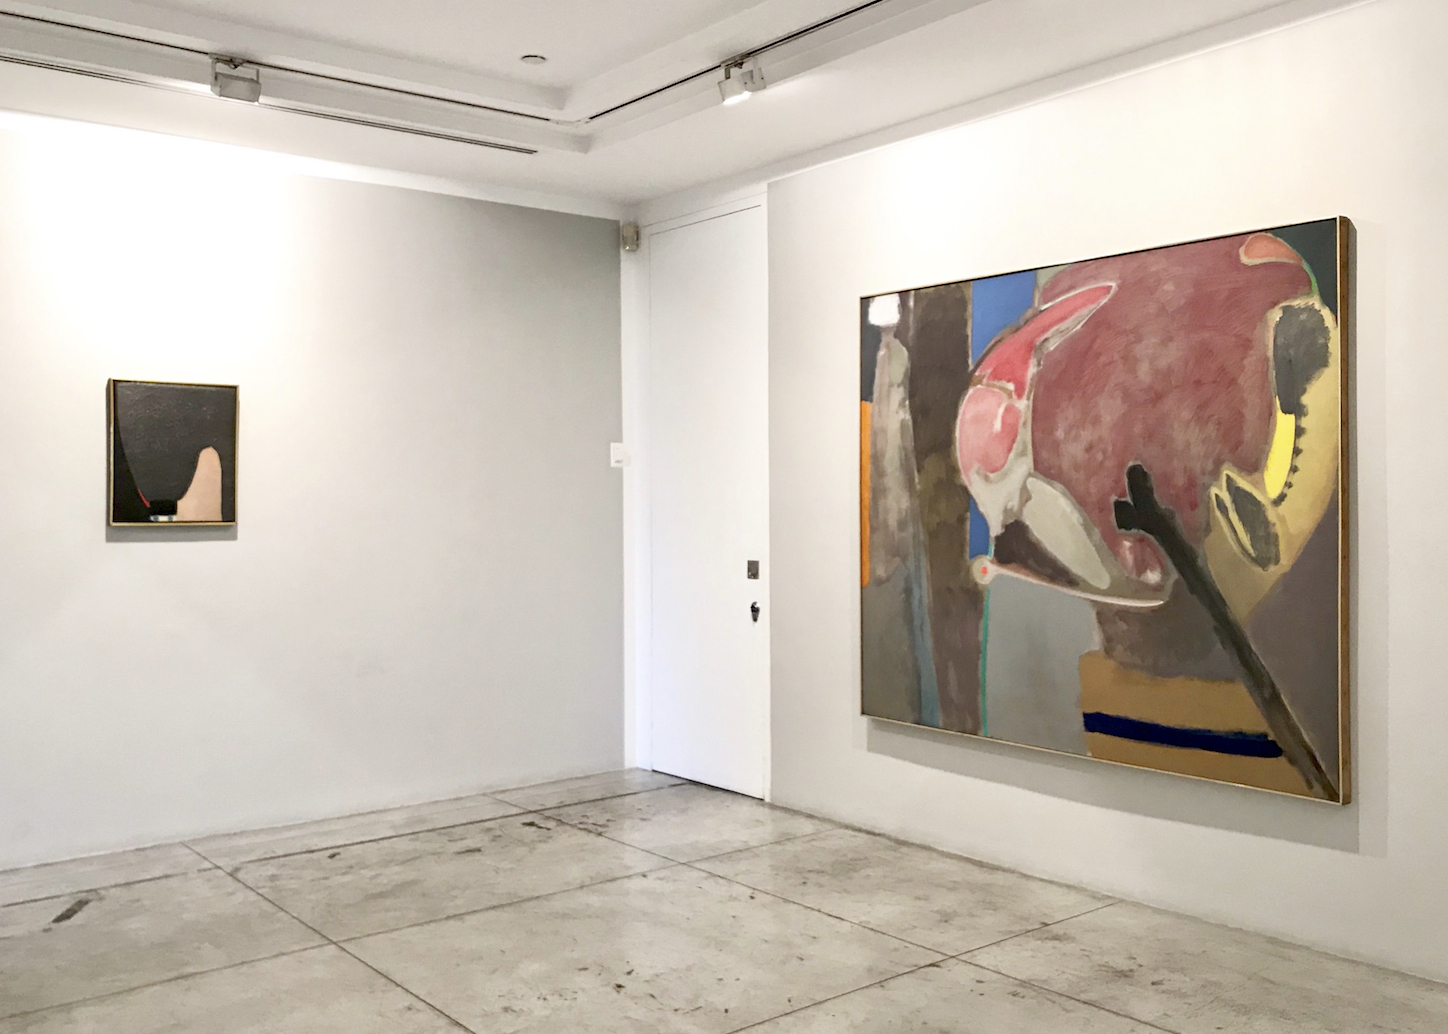 Installation View, Right: Stephen Greene (1917-1999),  Vigil,  1962, Oil on canvas, 68 x 80 inches Left: Bernard Childs (1910-1985),  Carmen , 1962, Oil, carborundum and graphite on canvas, 21 3/4 x 18 1/4 inches